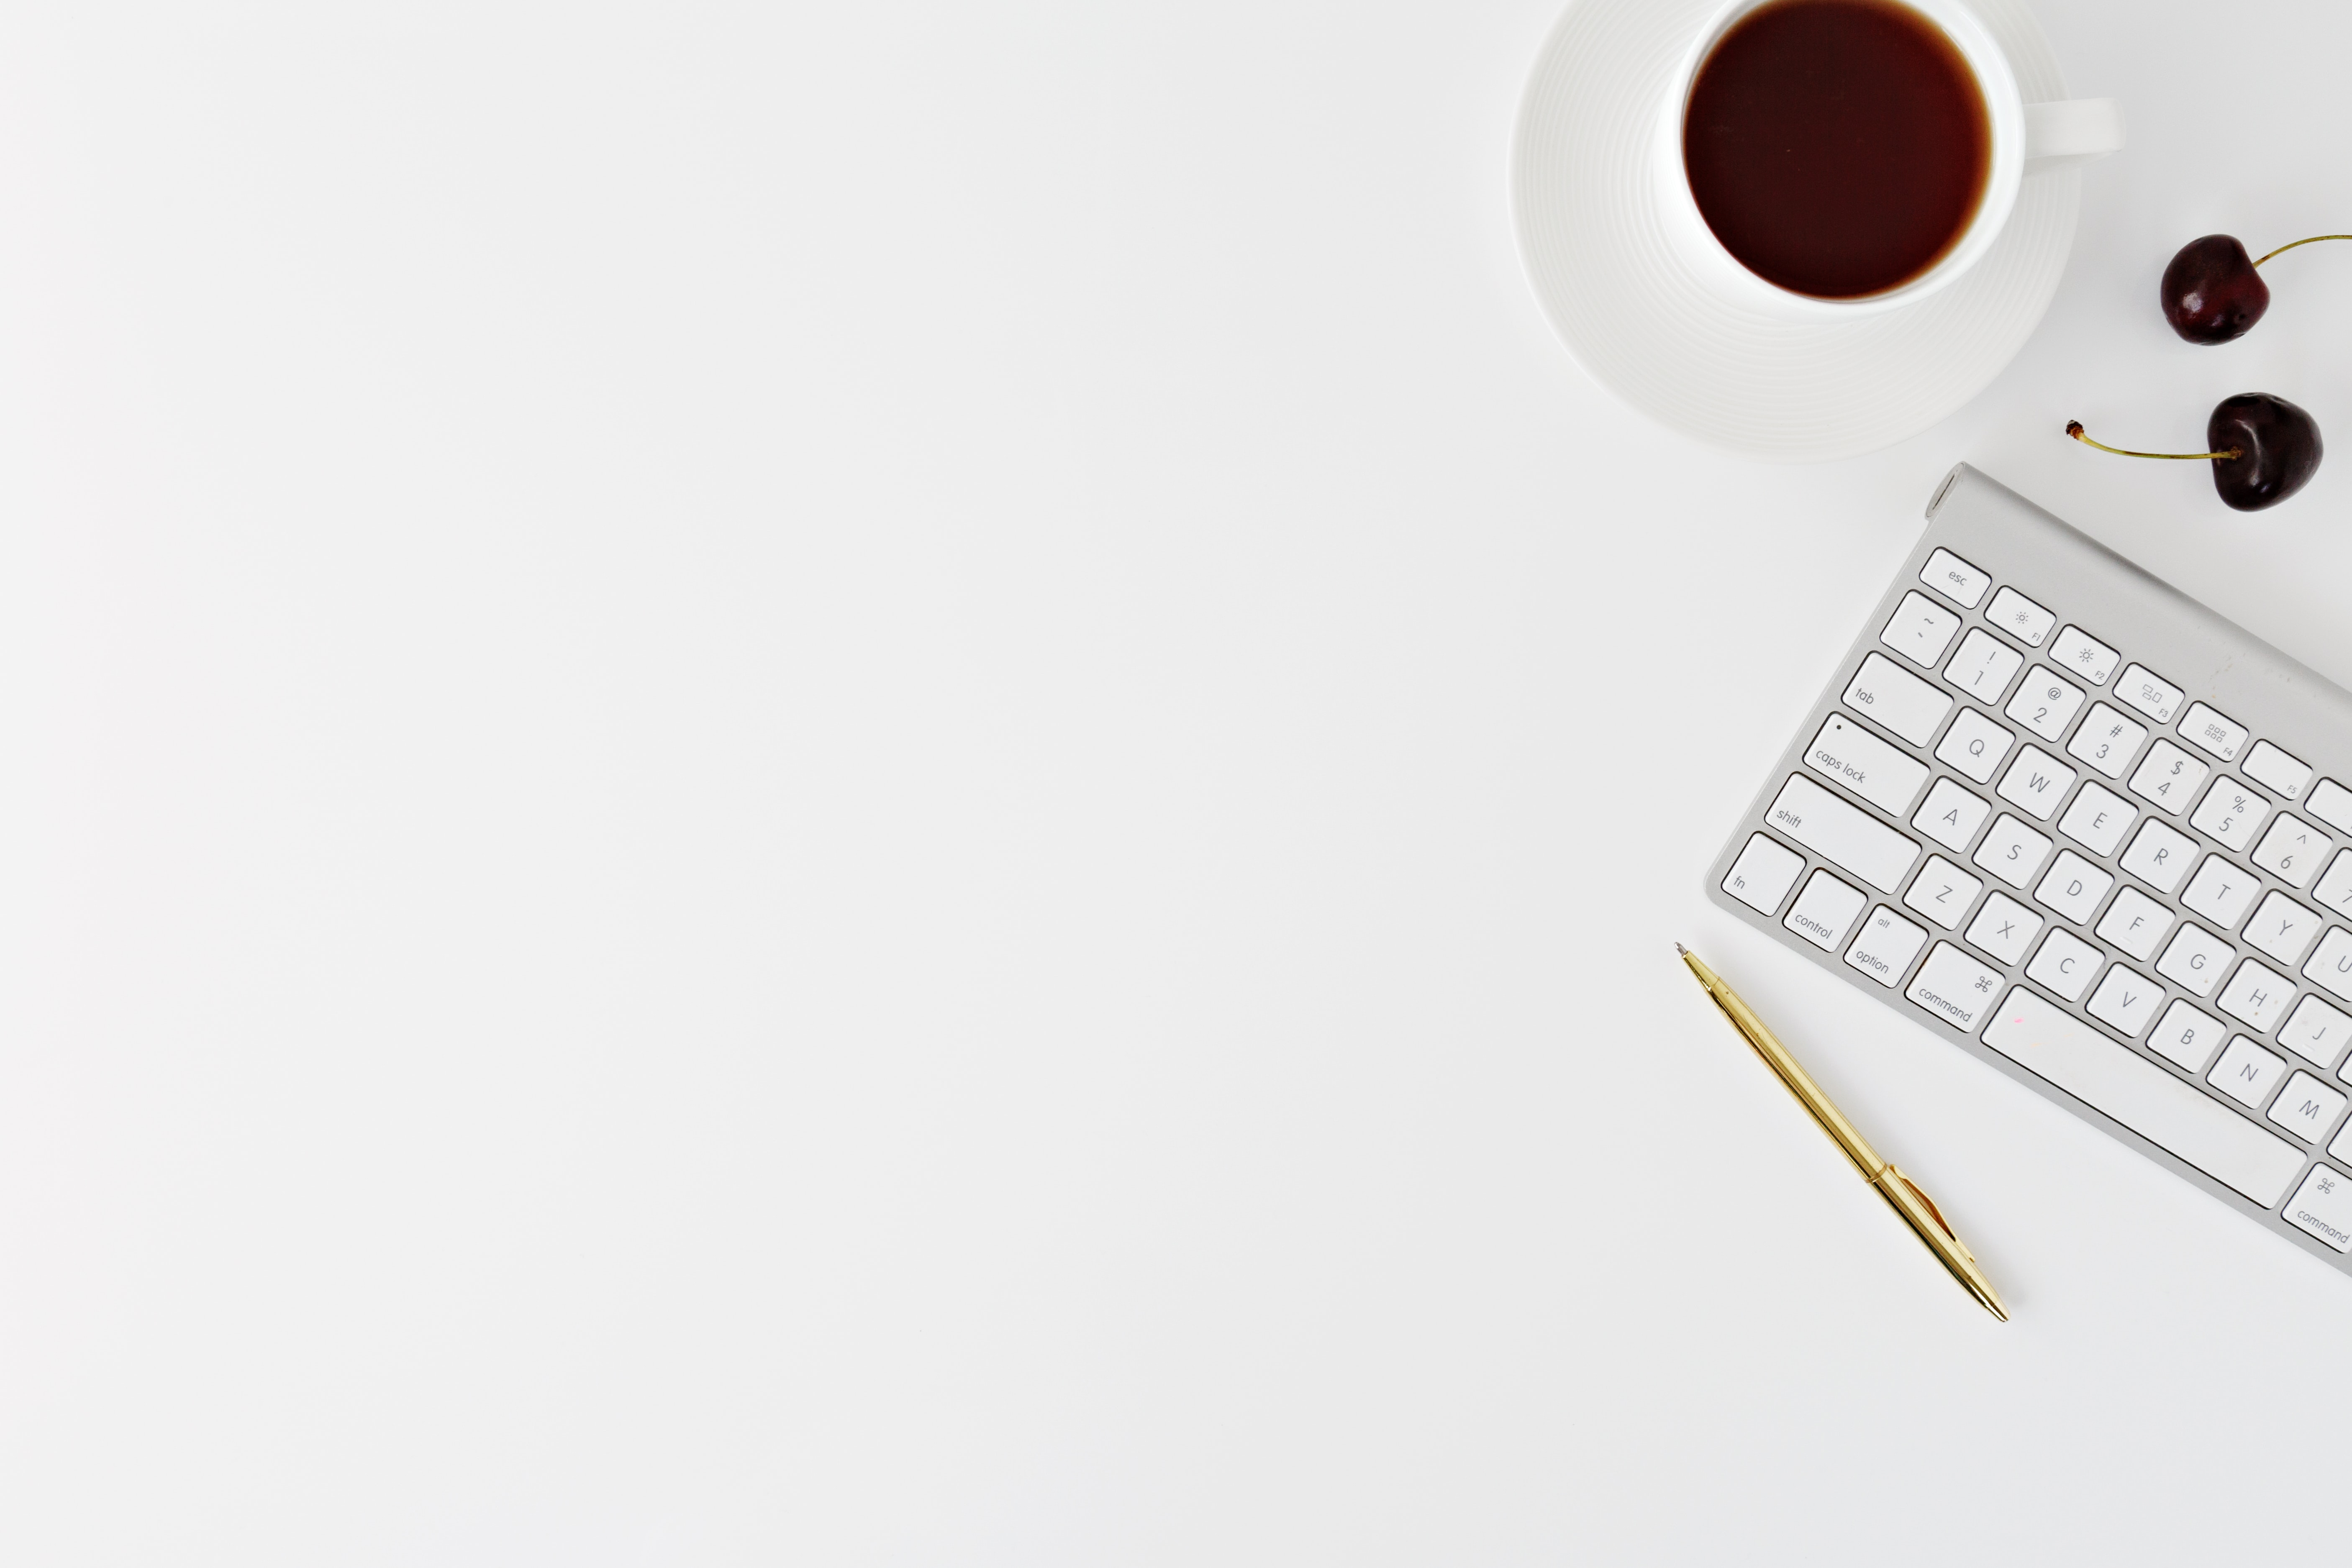 A cup of coffee, two cherries, the magic keyboard and a pencil